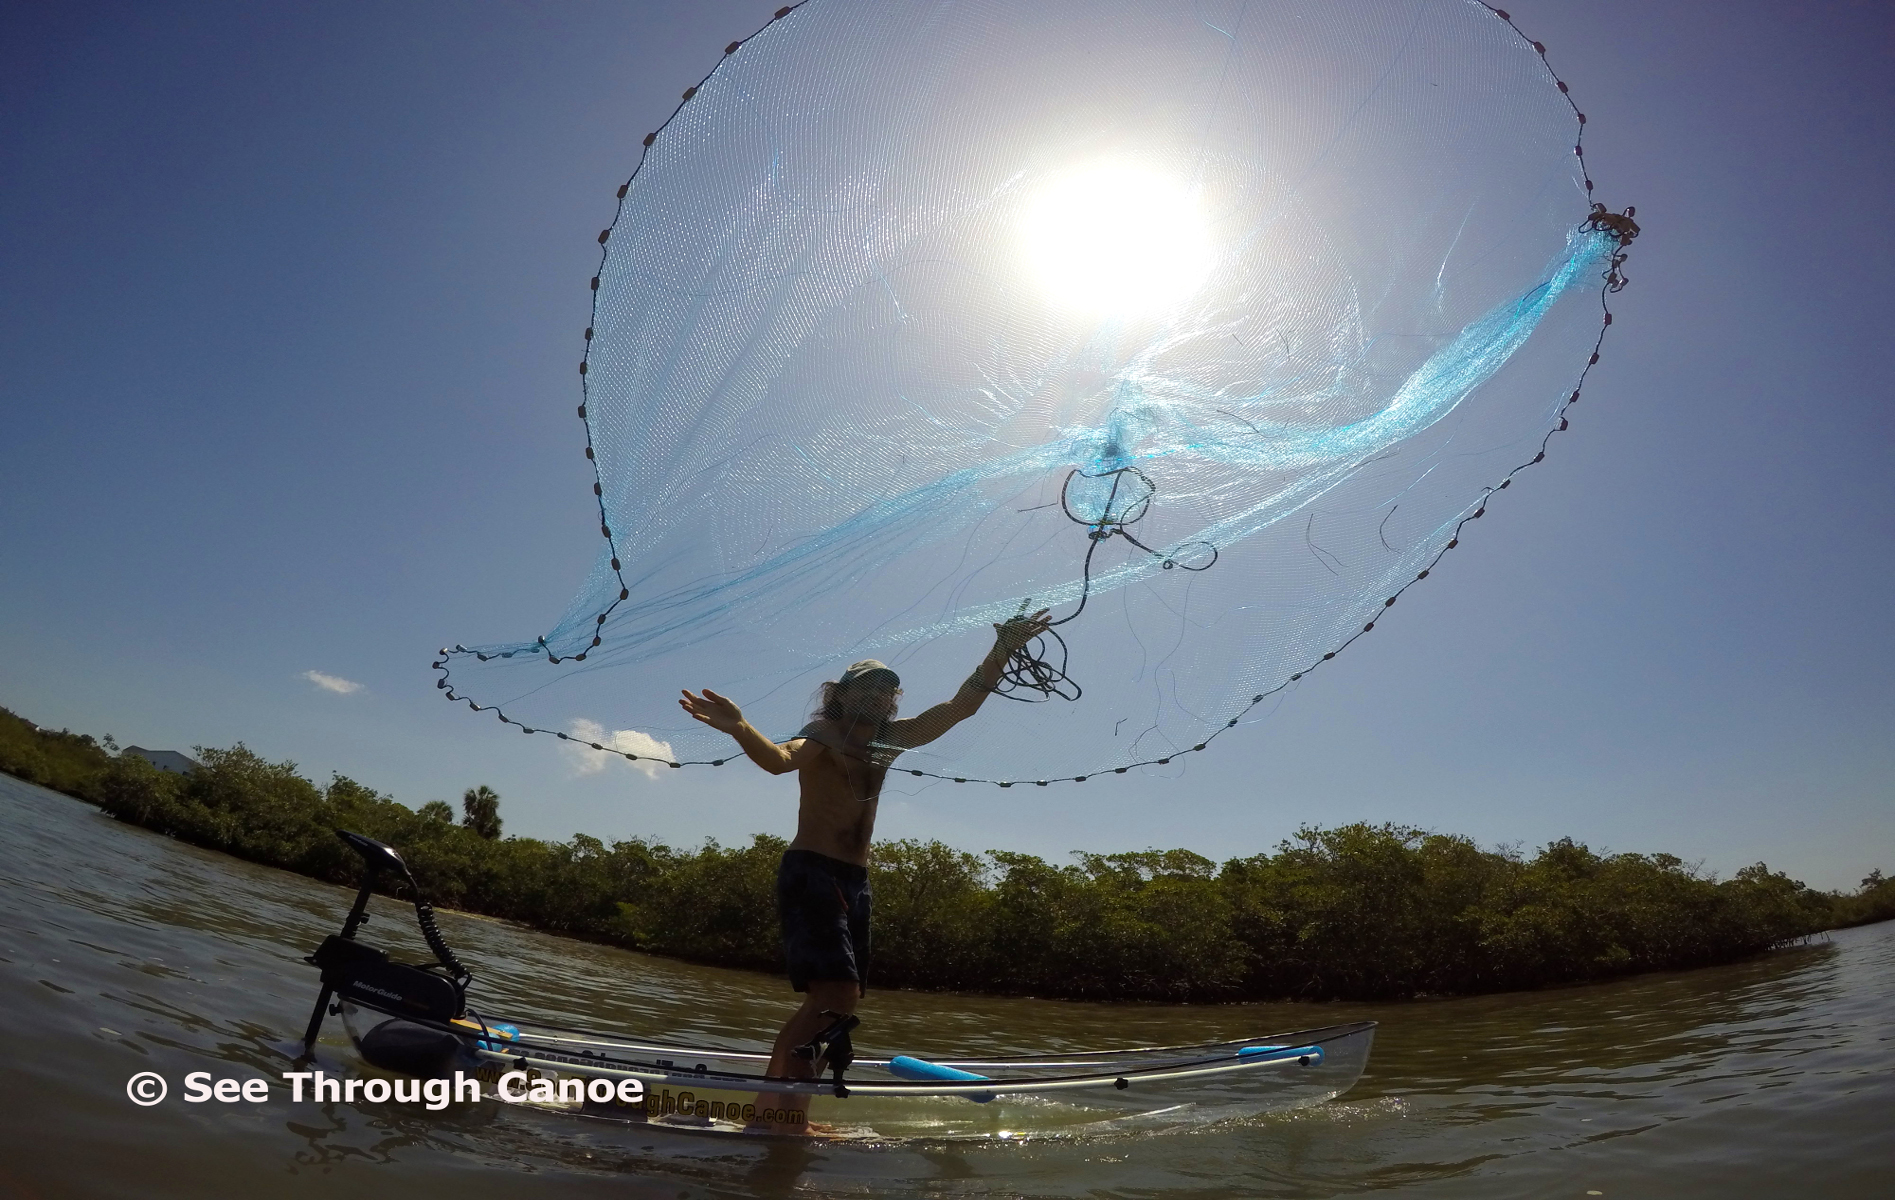 Throwing a cast net from the clear canoe